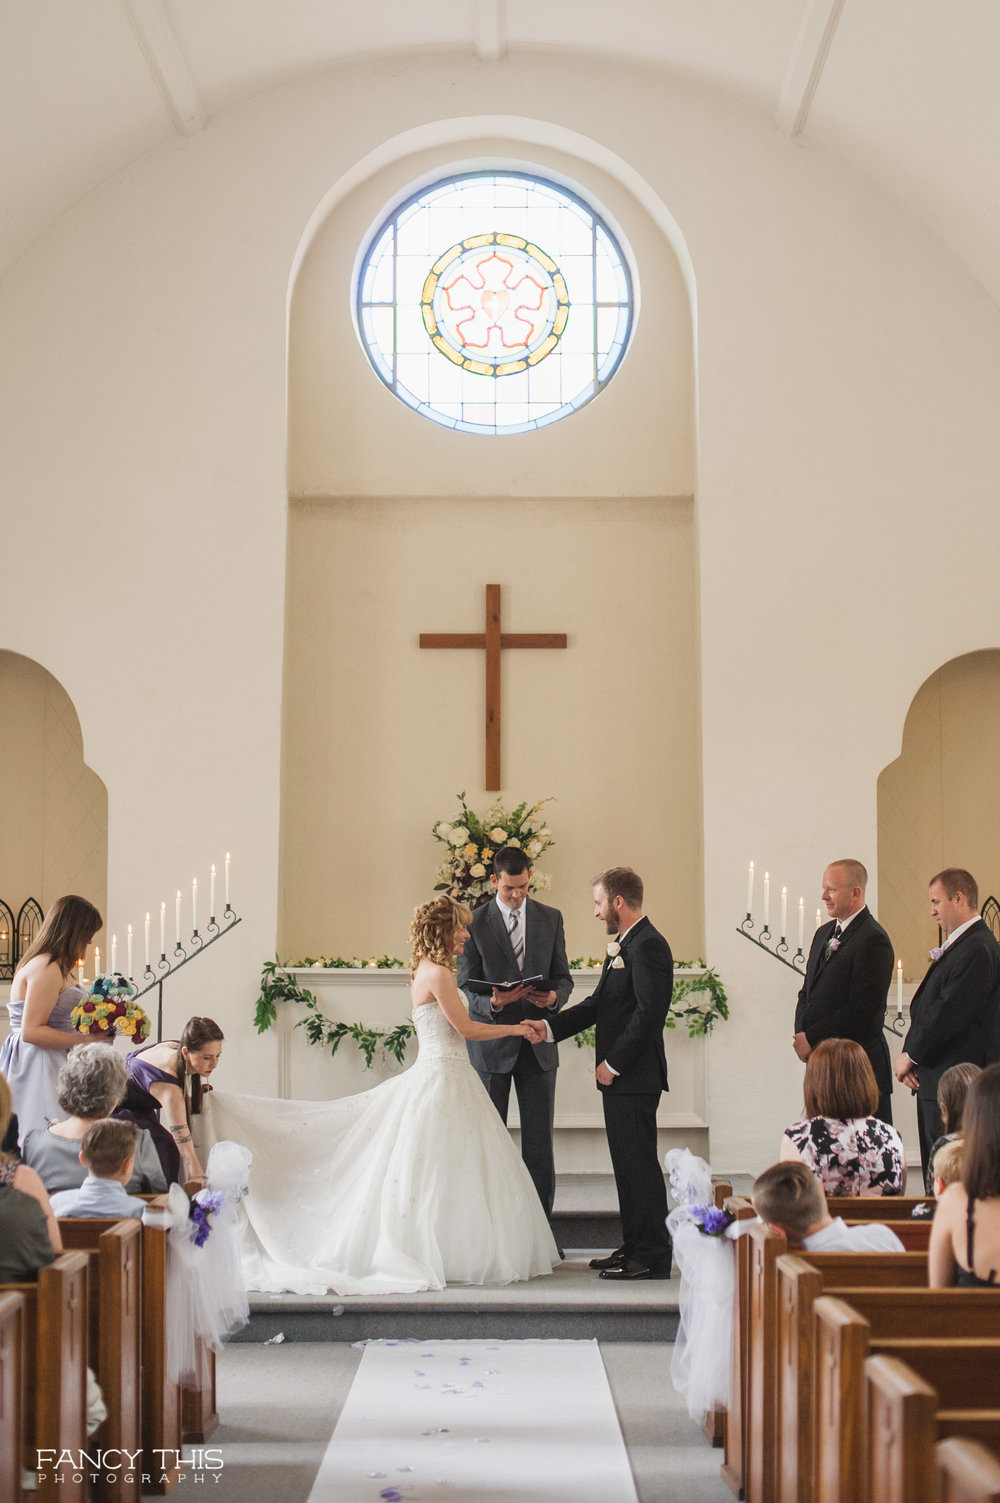 courtneyjasonwedding_socialmediaready094.jpg